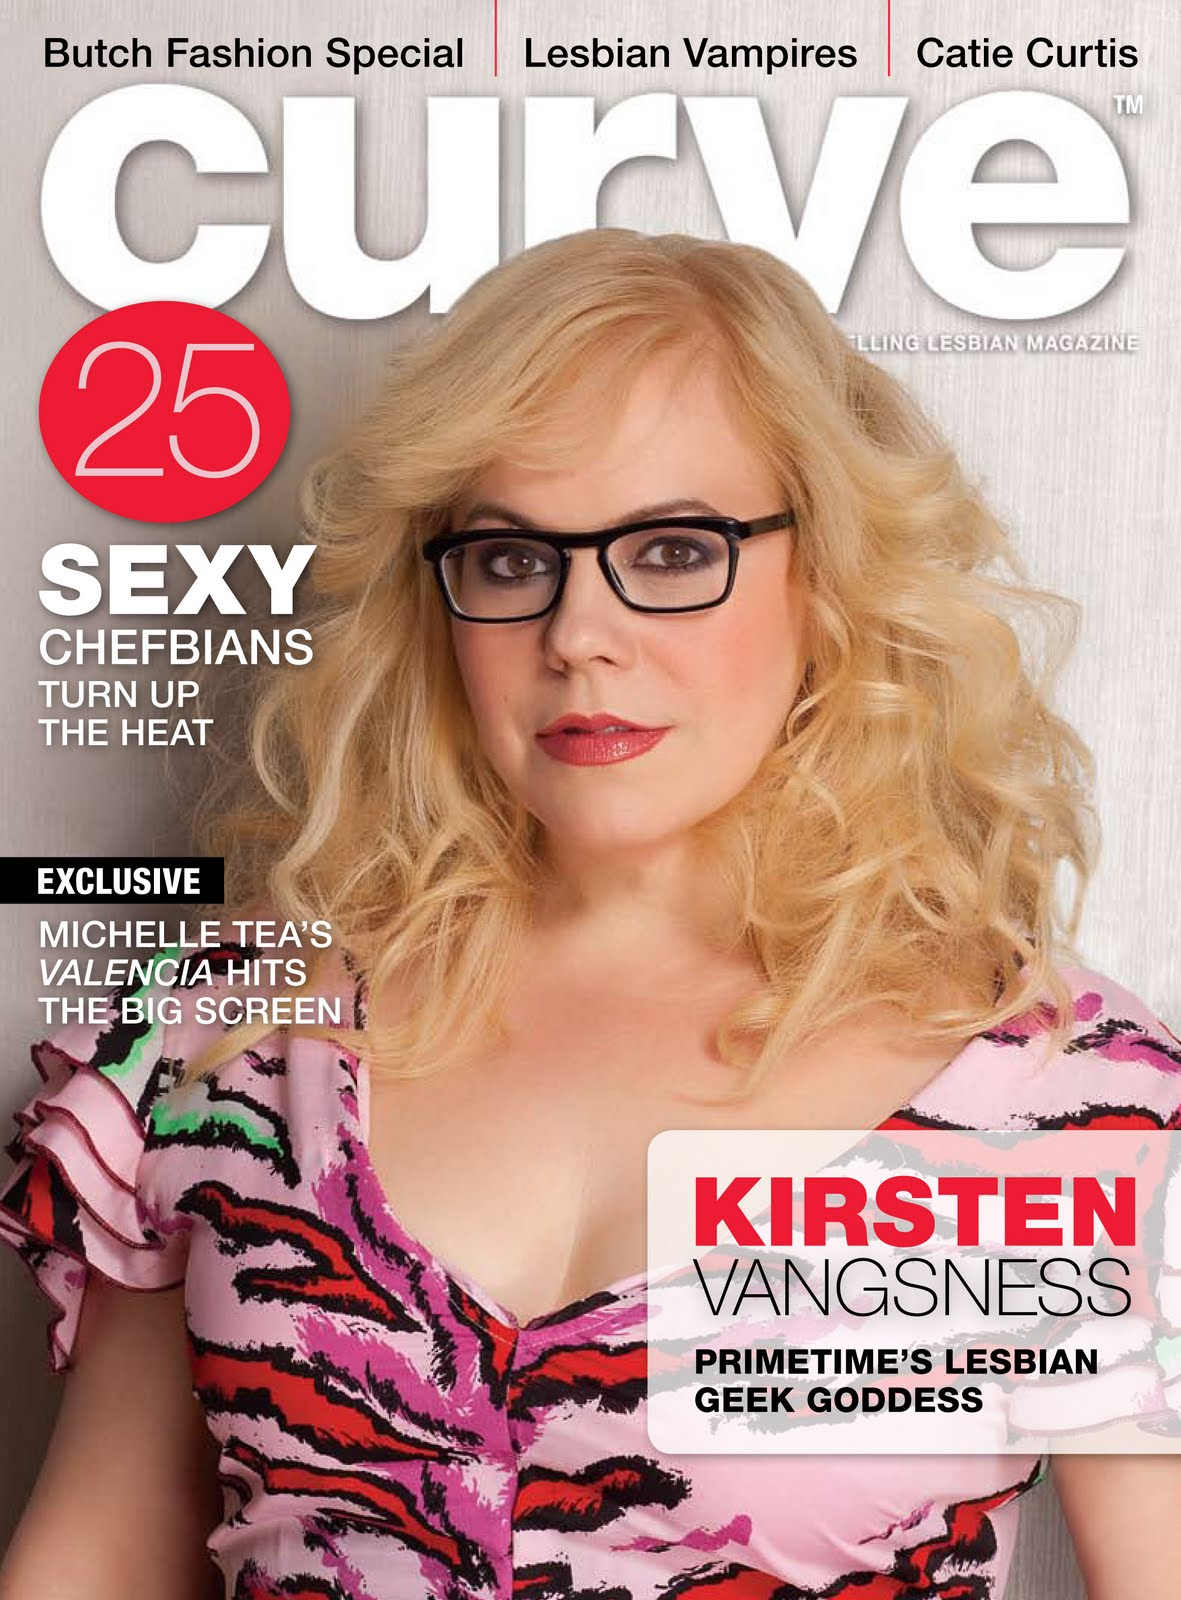 Kirsten Vangsness And Melanie  Kirsten Vangsness And Melanie Goldstein Wedding